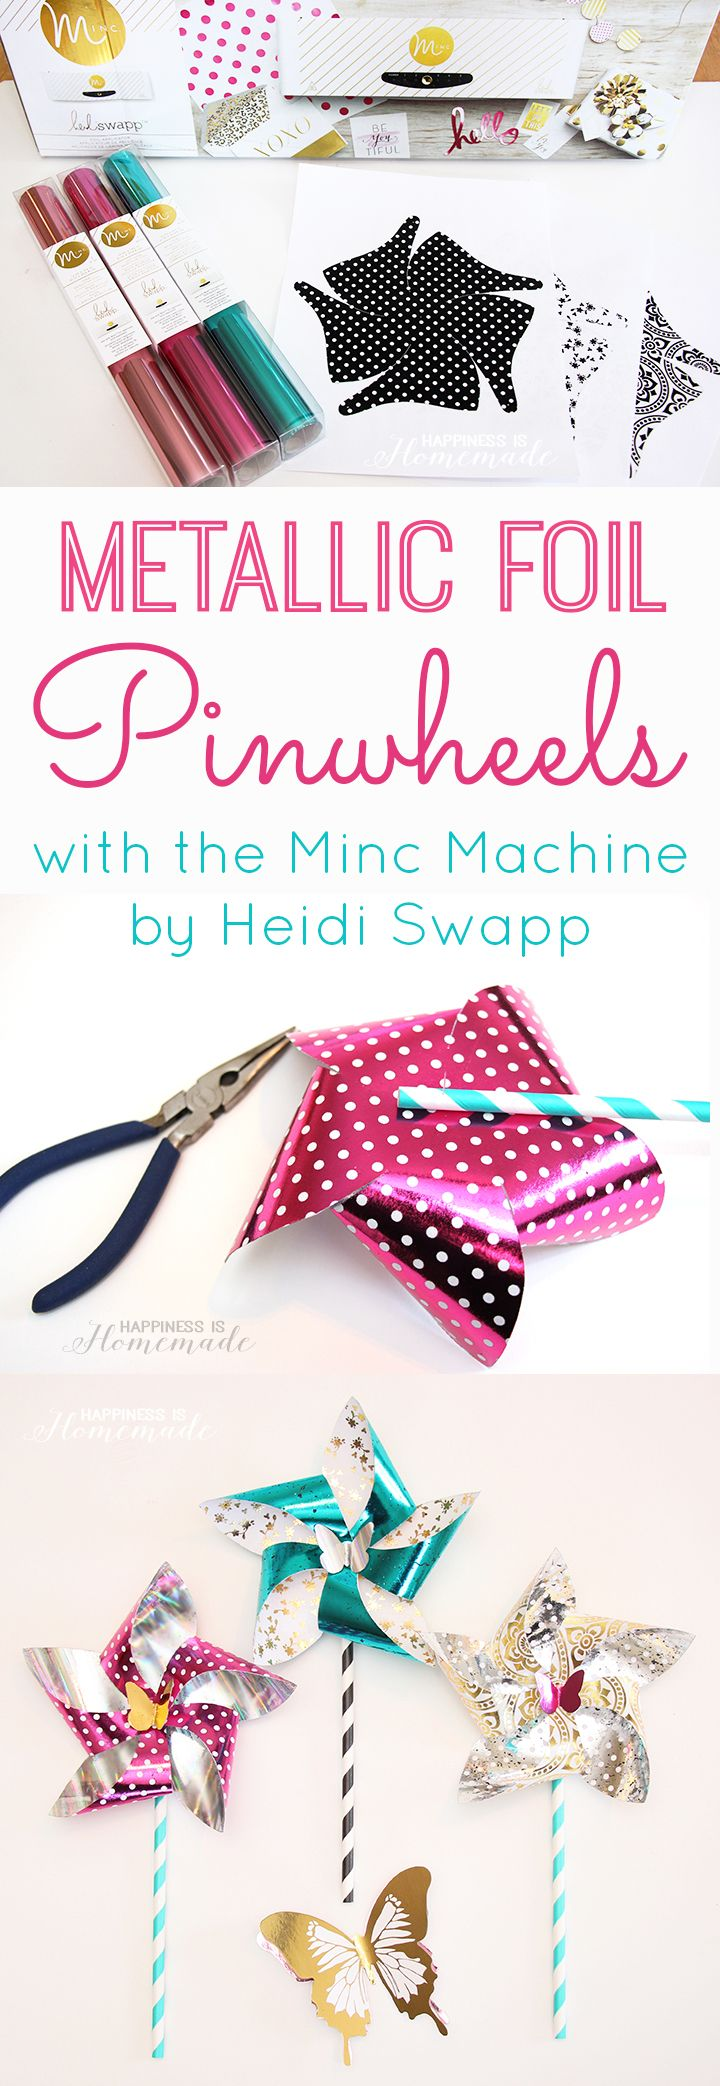 How to Make Metallic Foil Pinwheels with the Minc Machine by @heidiswapp - Tutorial #HSMinc #FoilAllTheThings #ad